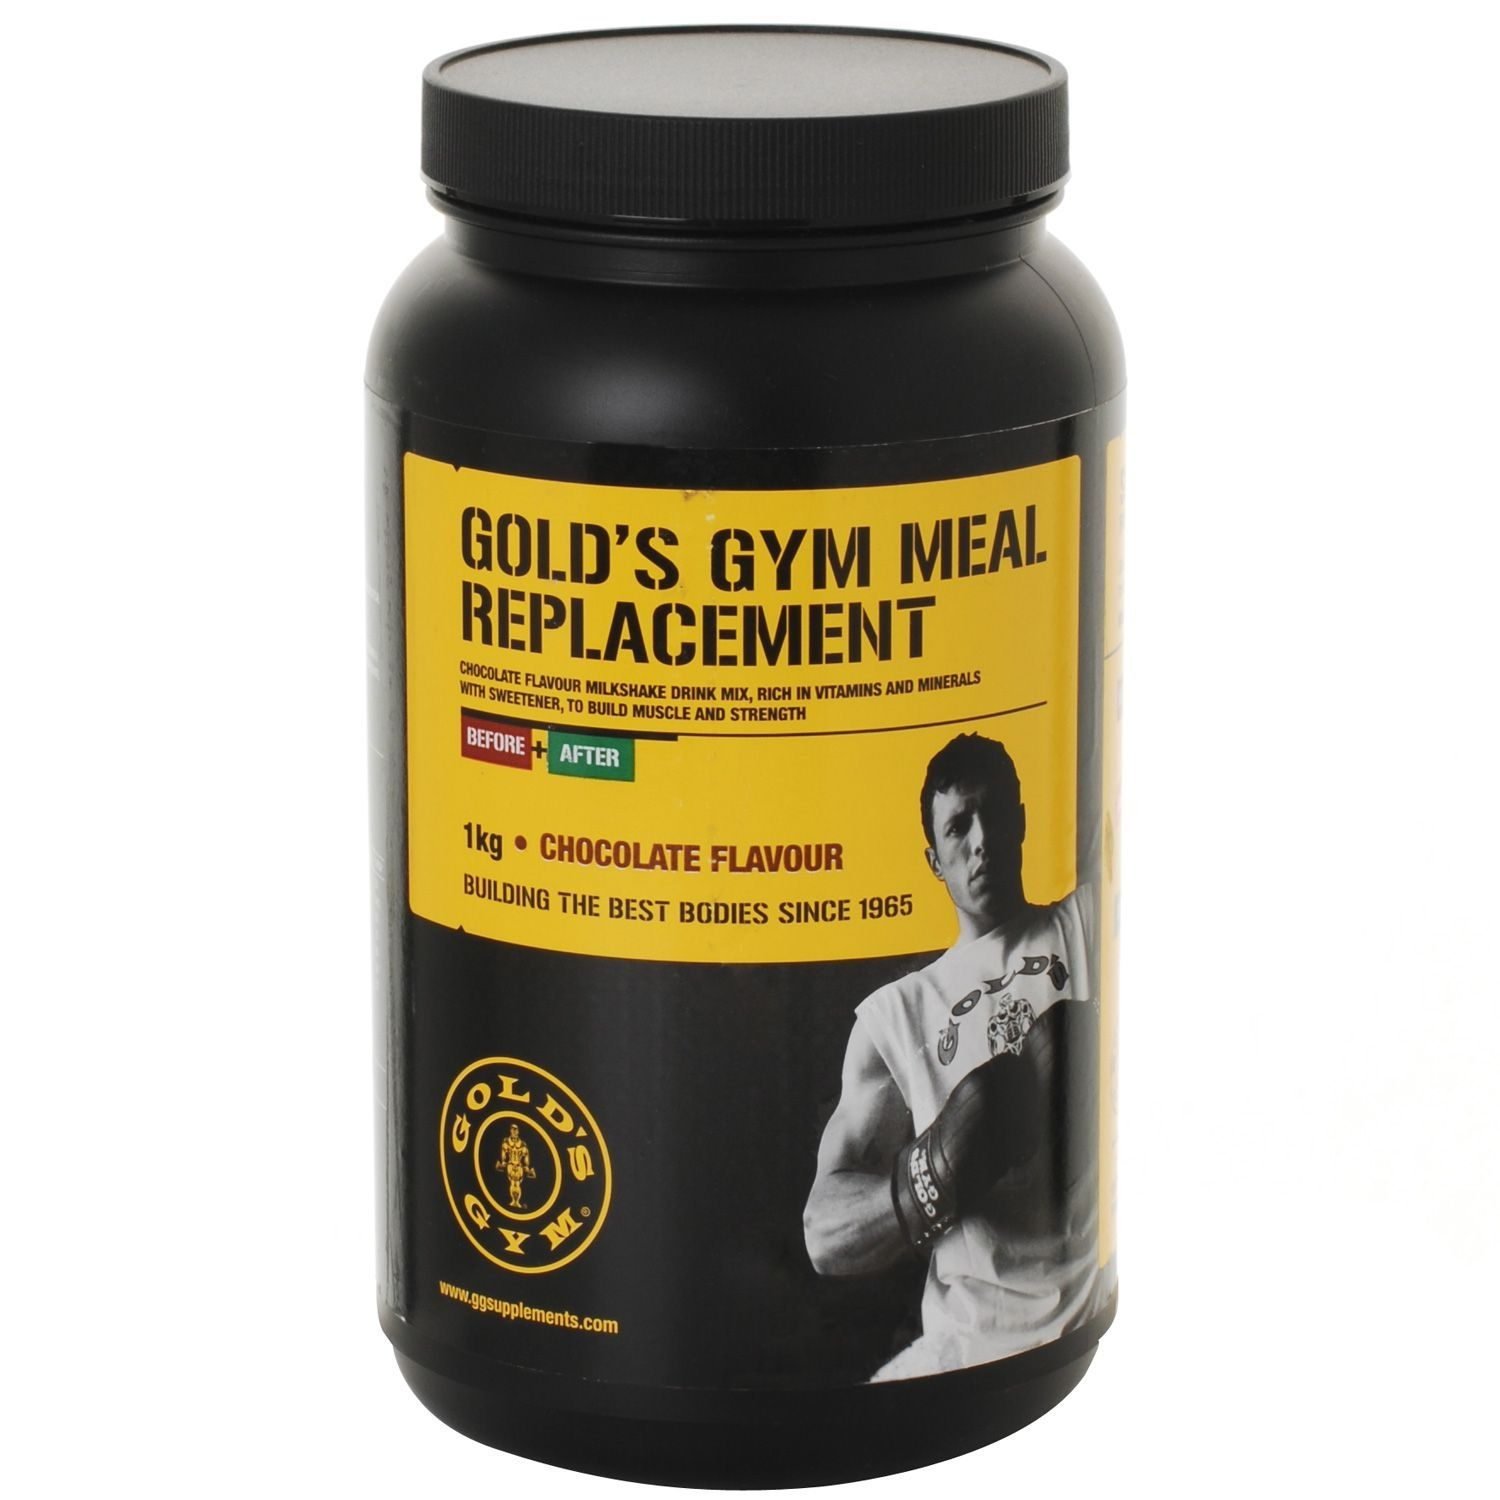 Golds Gym Meal Replacement  Sweatband.com